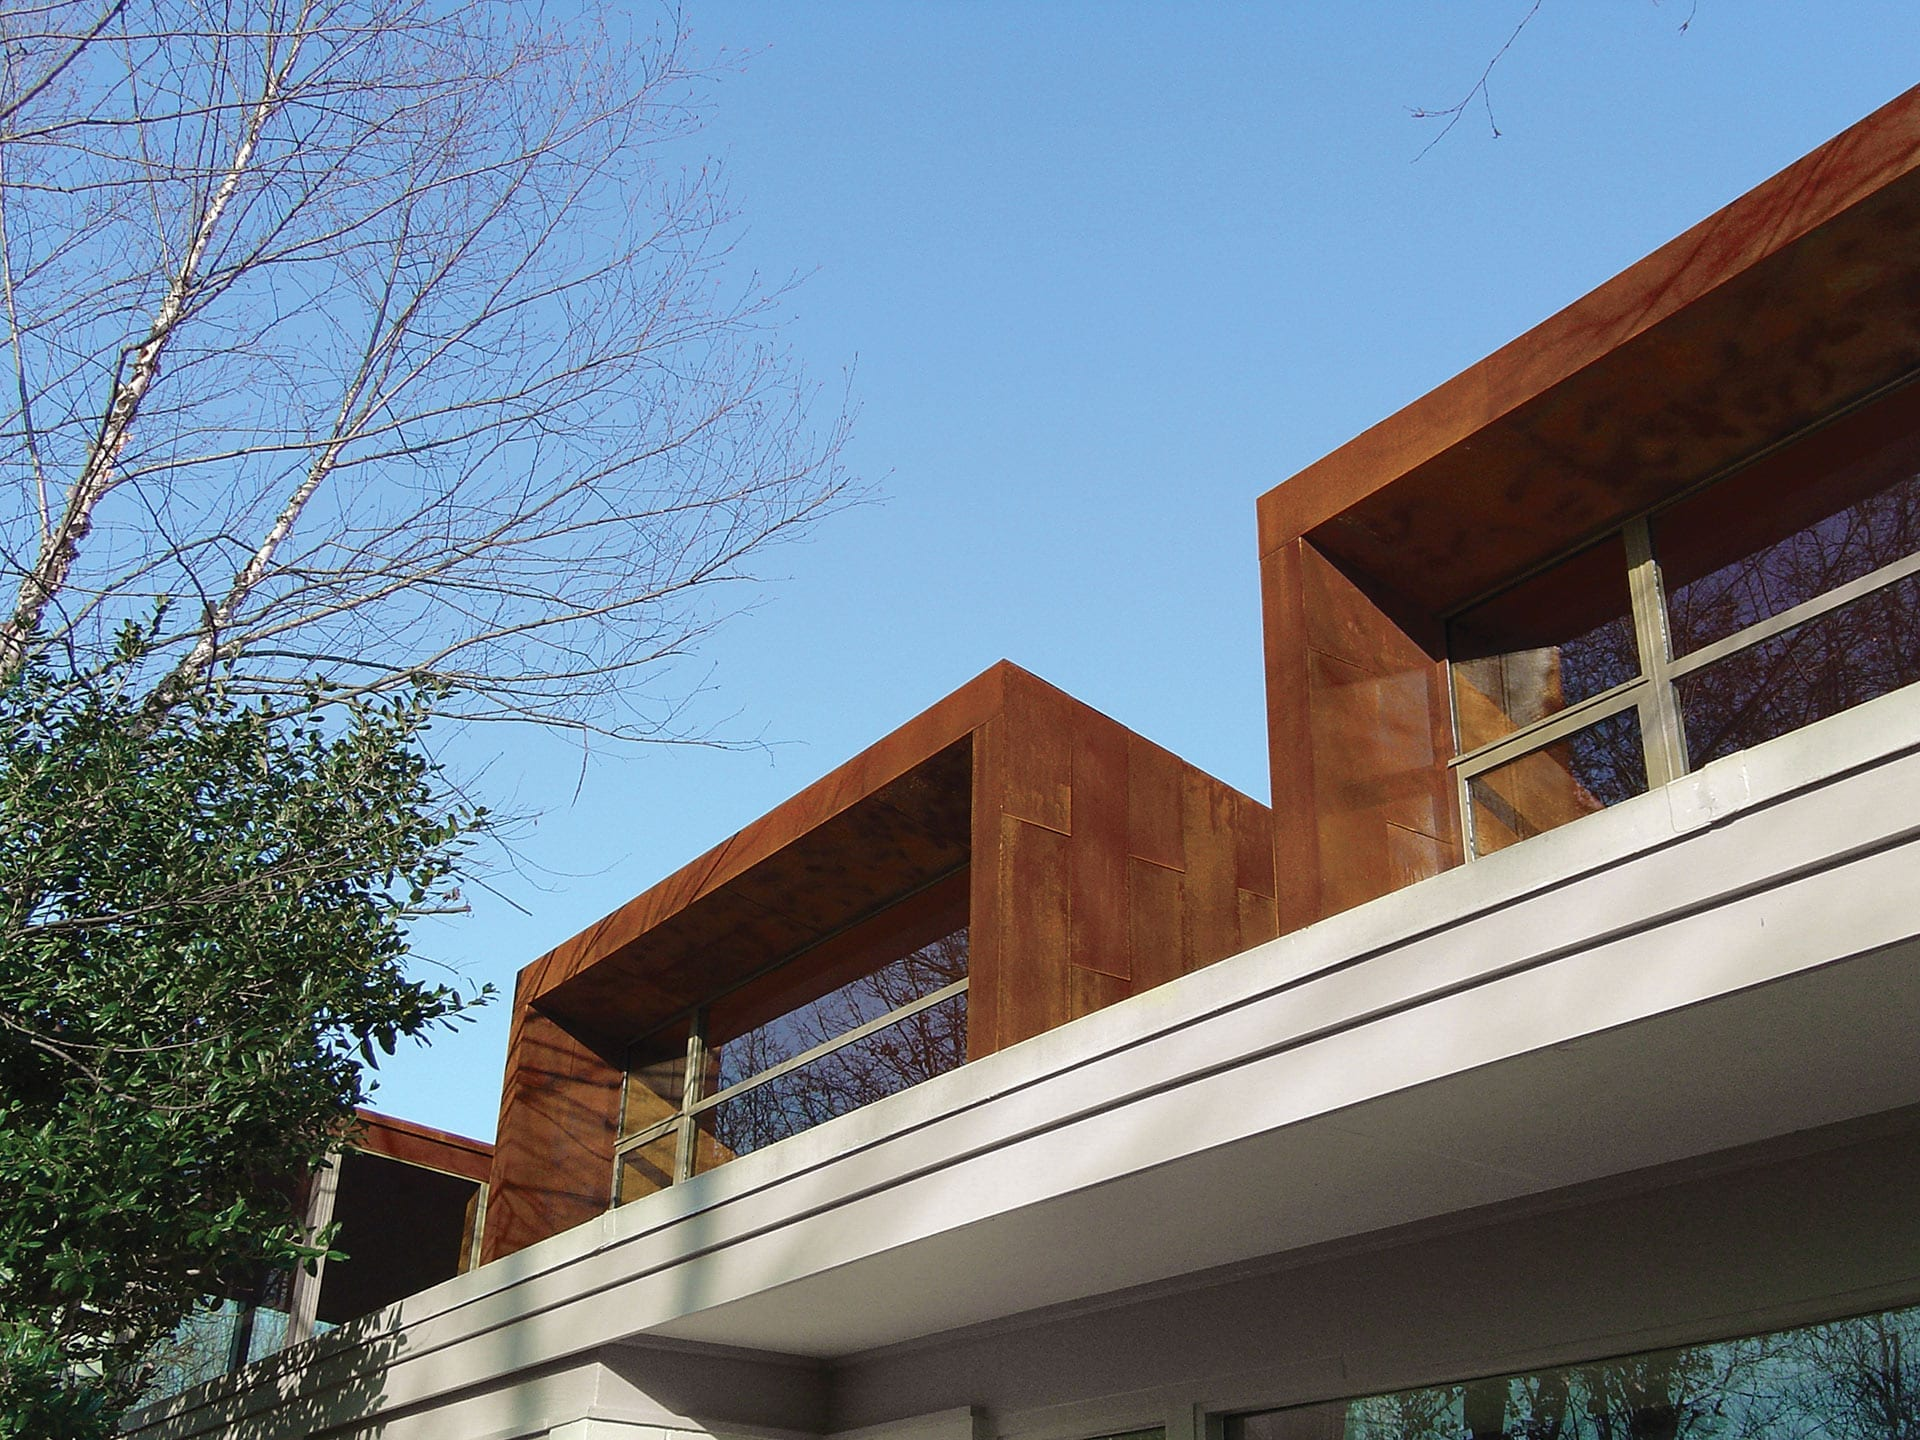 Details of the Solanum Steel exterior cladding on the Arkansas House.